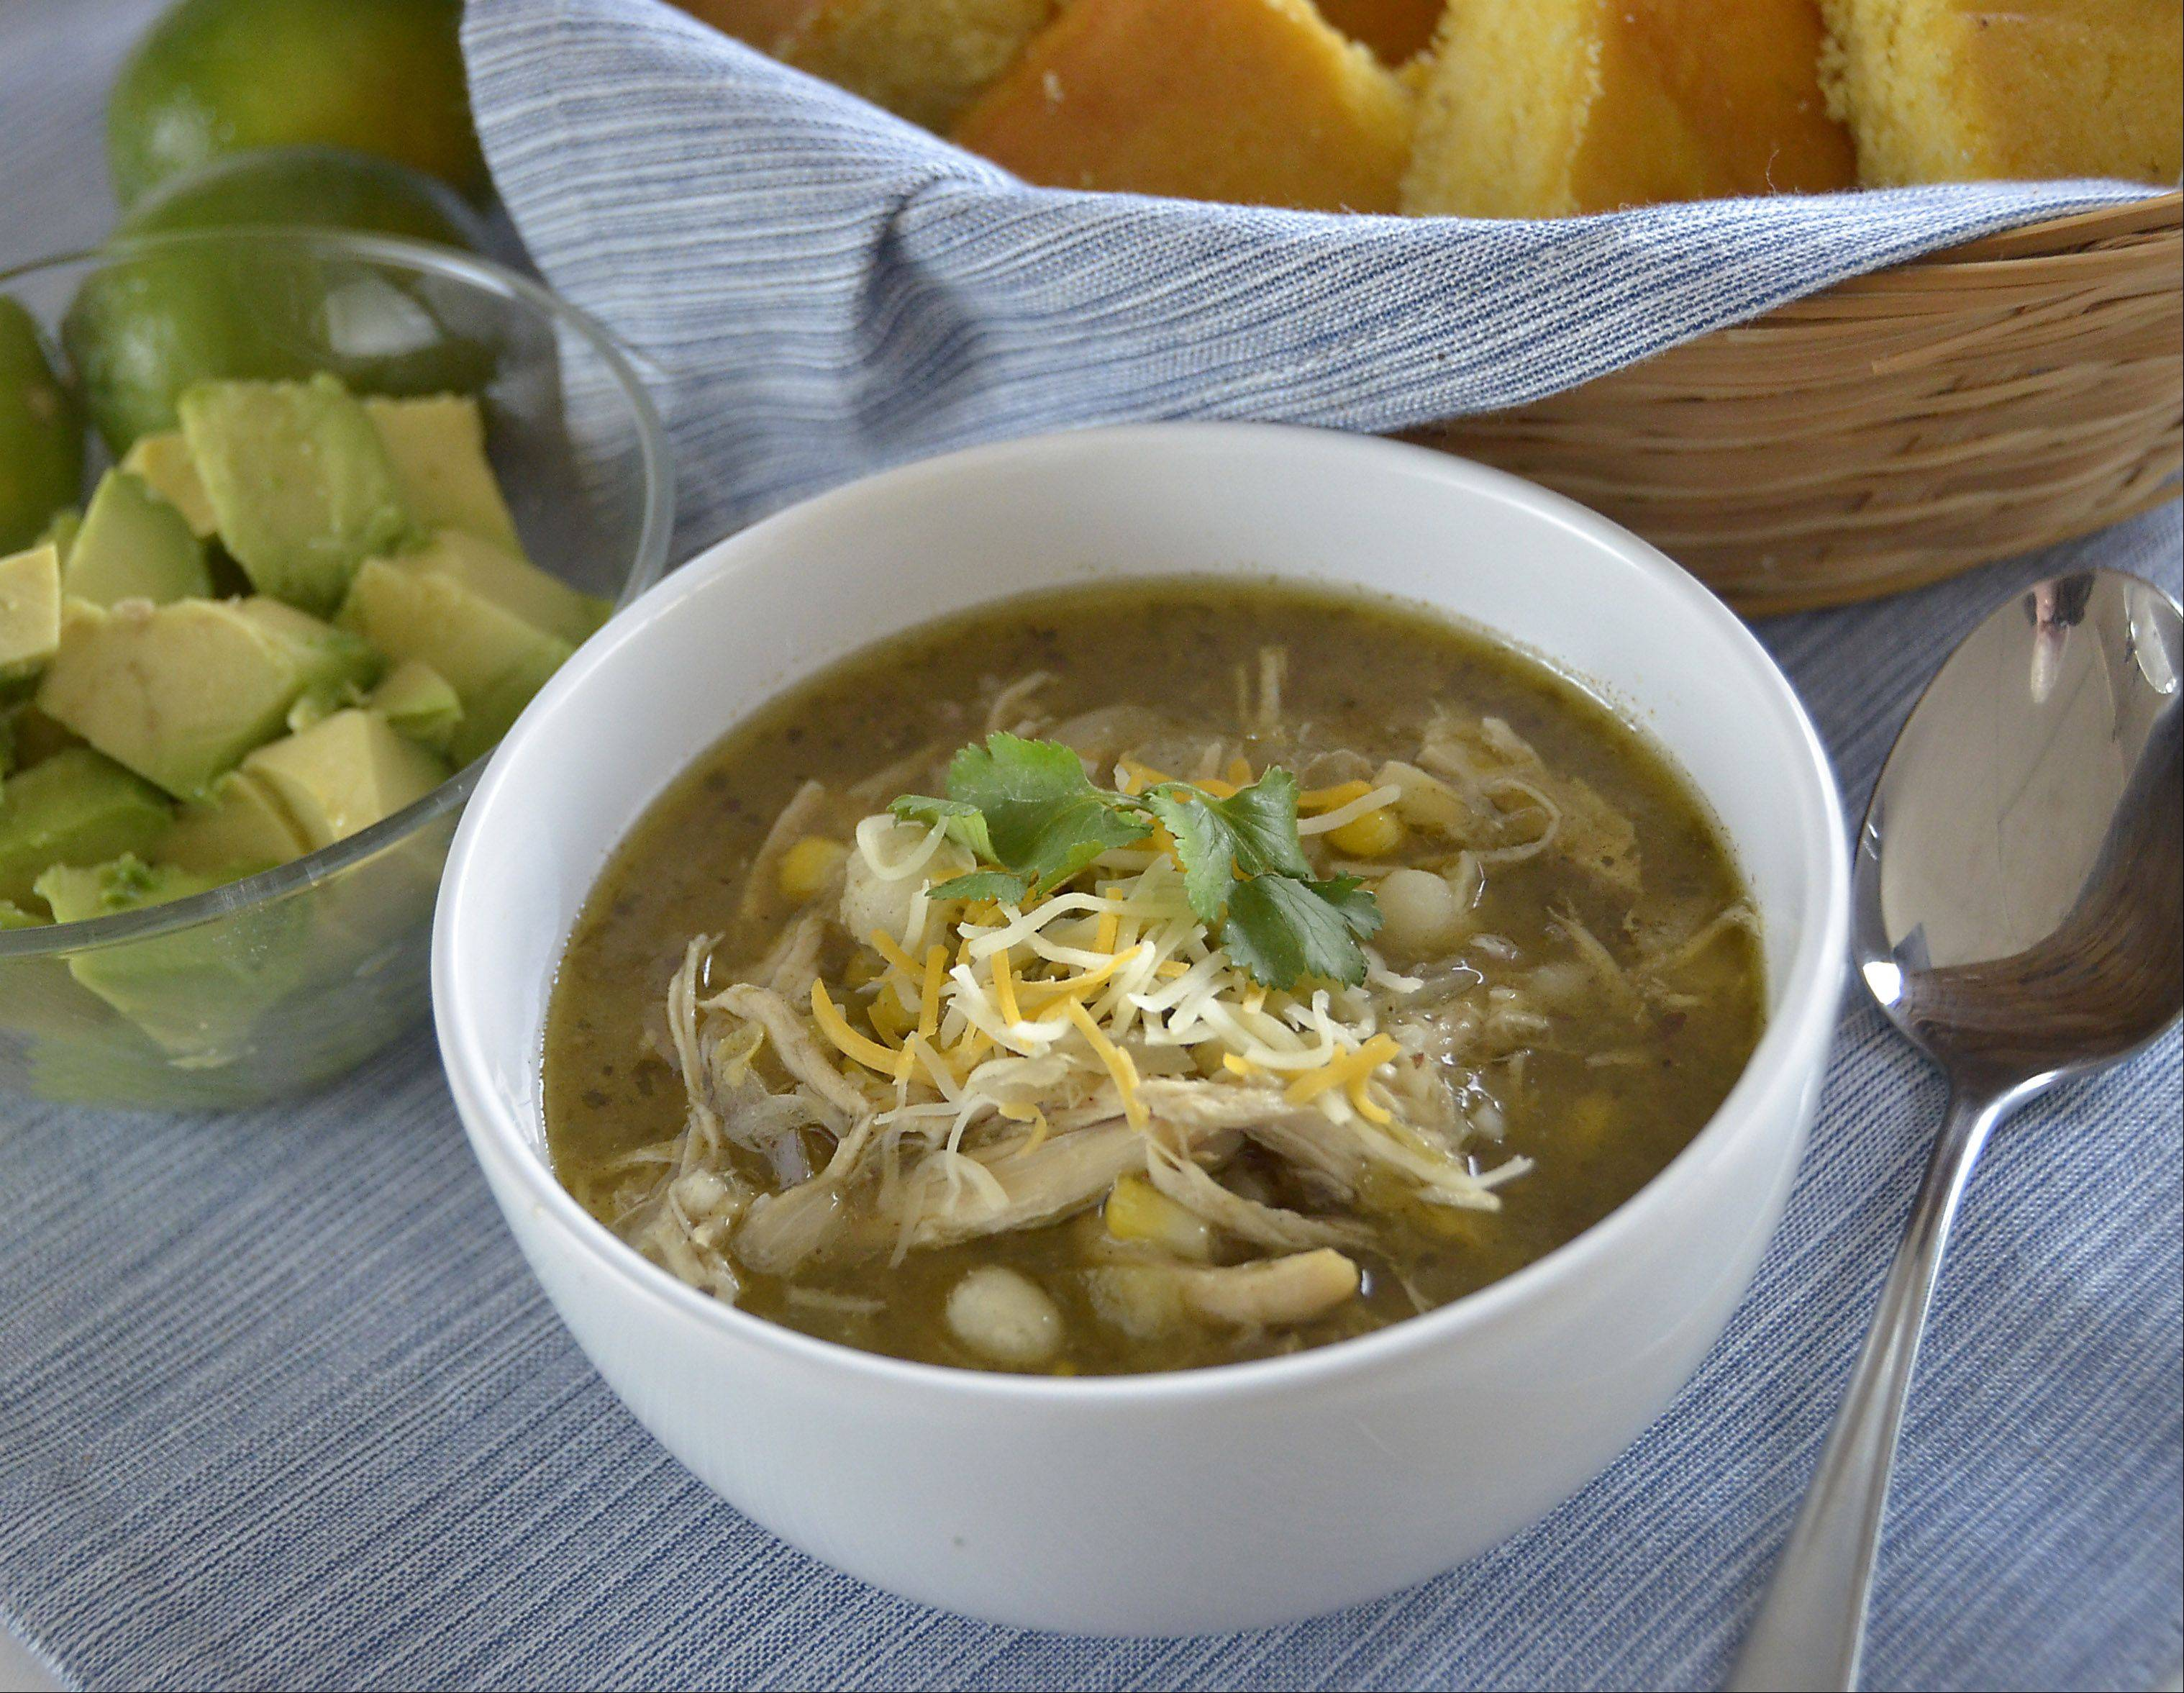 Convenience foods like rotisserie chicken and frozen corn help this white chili come together relatively quickly and still boast loads of flavor.